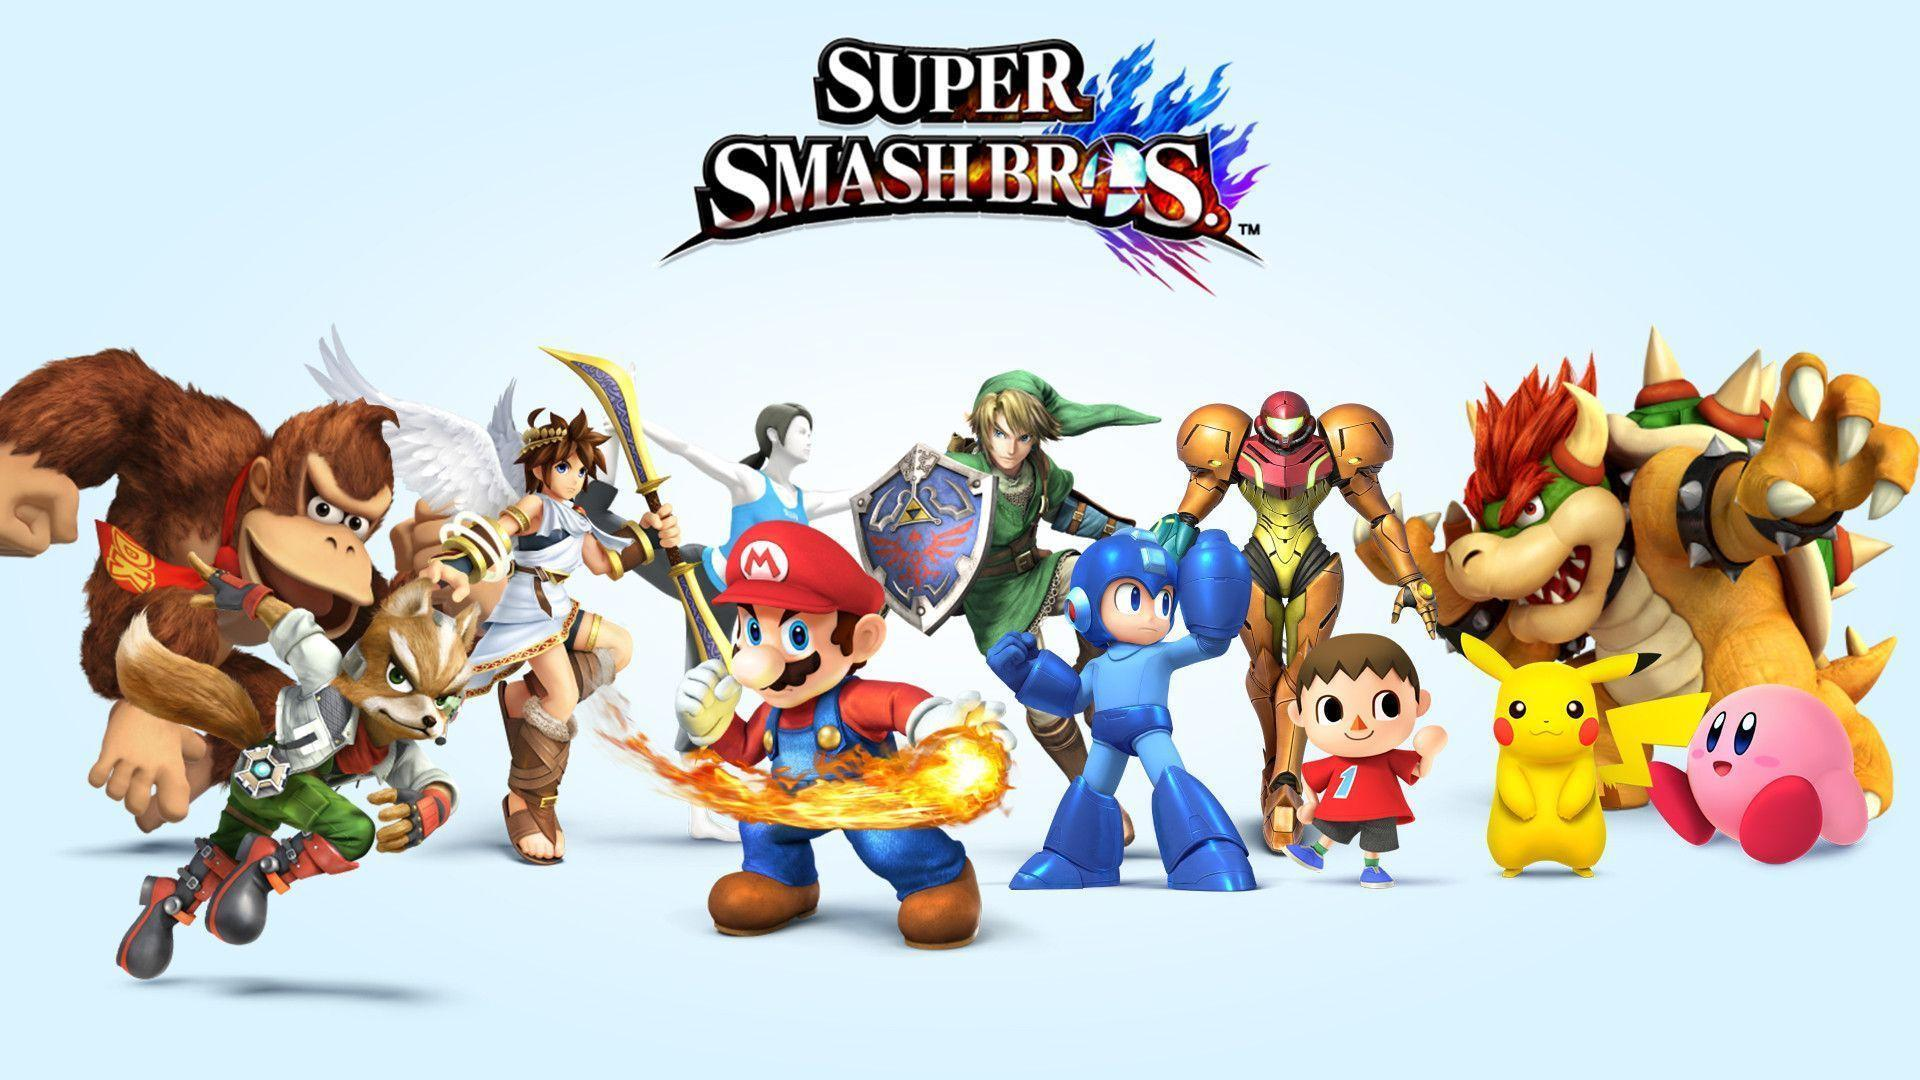 Super Smash Bros 4 Characters Wallpapers [HD]